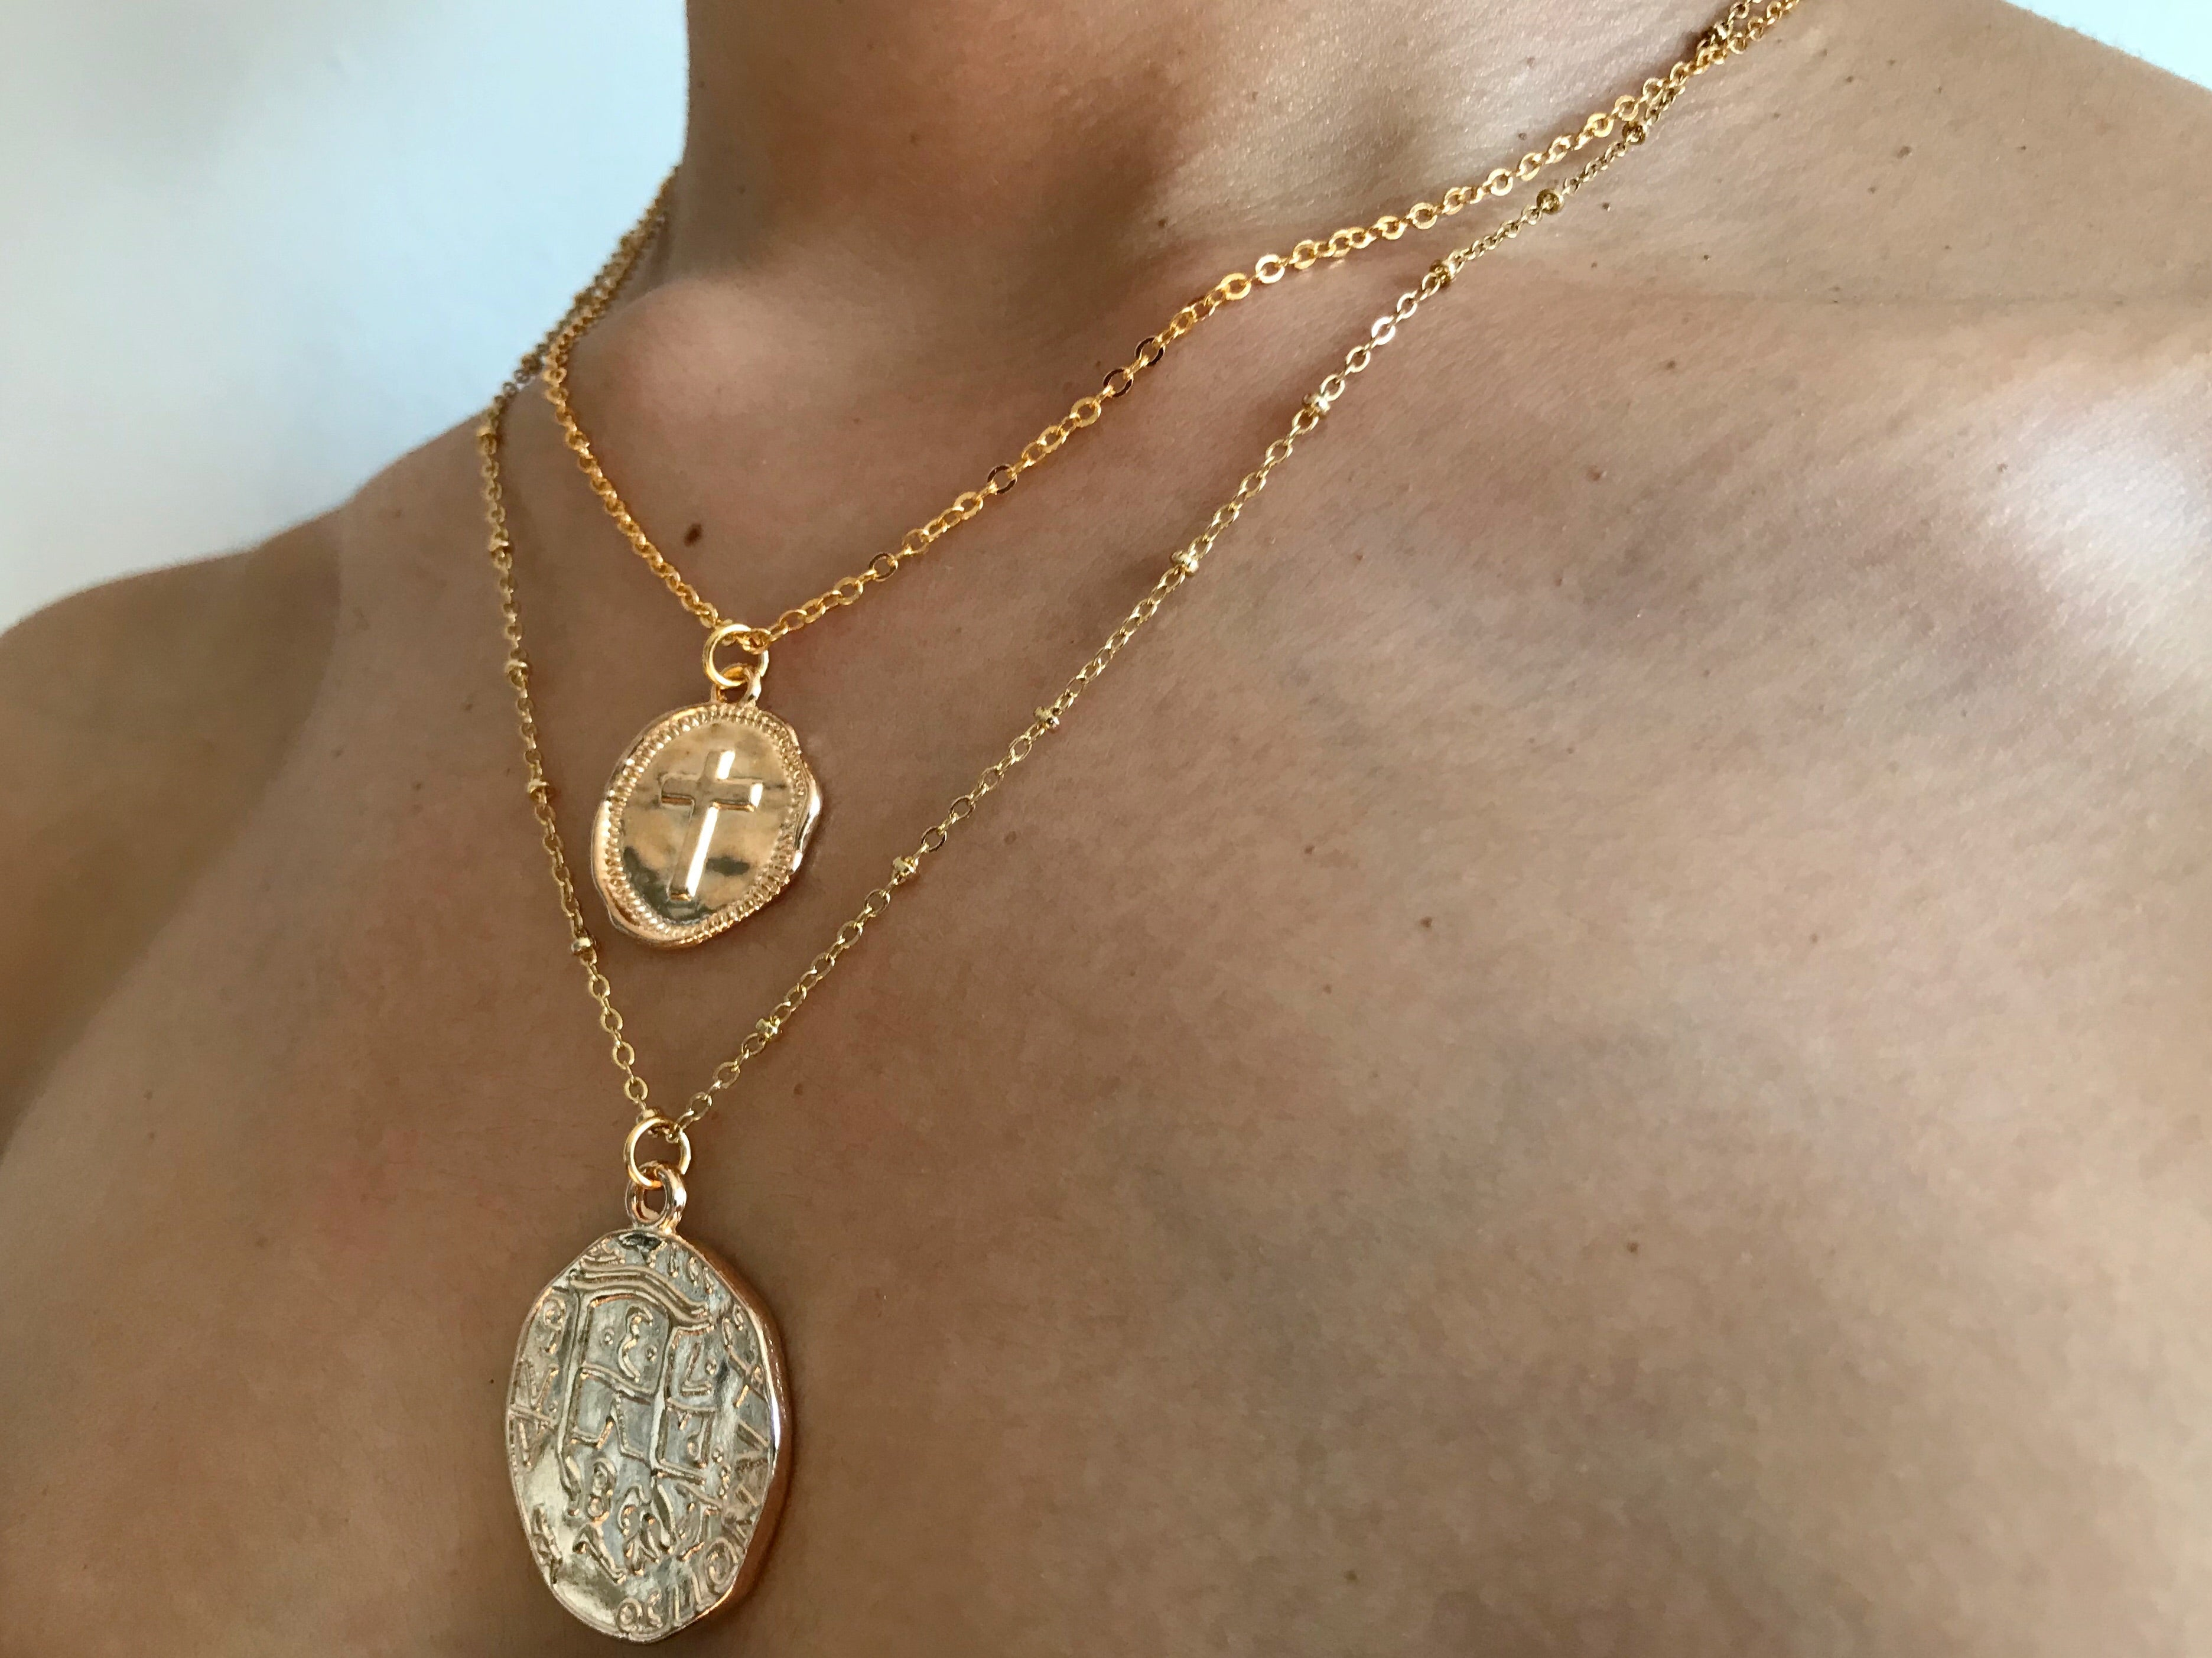 Cross coin charm necklace, cross coin necklace, cross jewelry cross stamp necklace, wax stamp jewelry, wax stamp charm, horse shoe necklace, pearl necklace, gold neckalce, small coin necklace